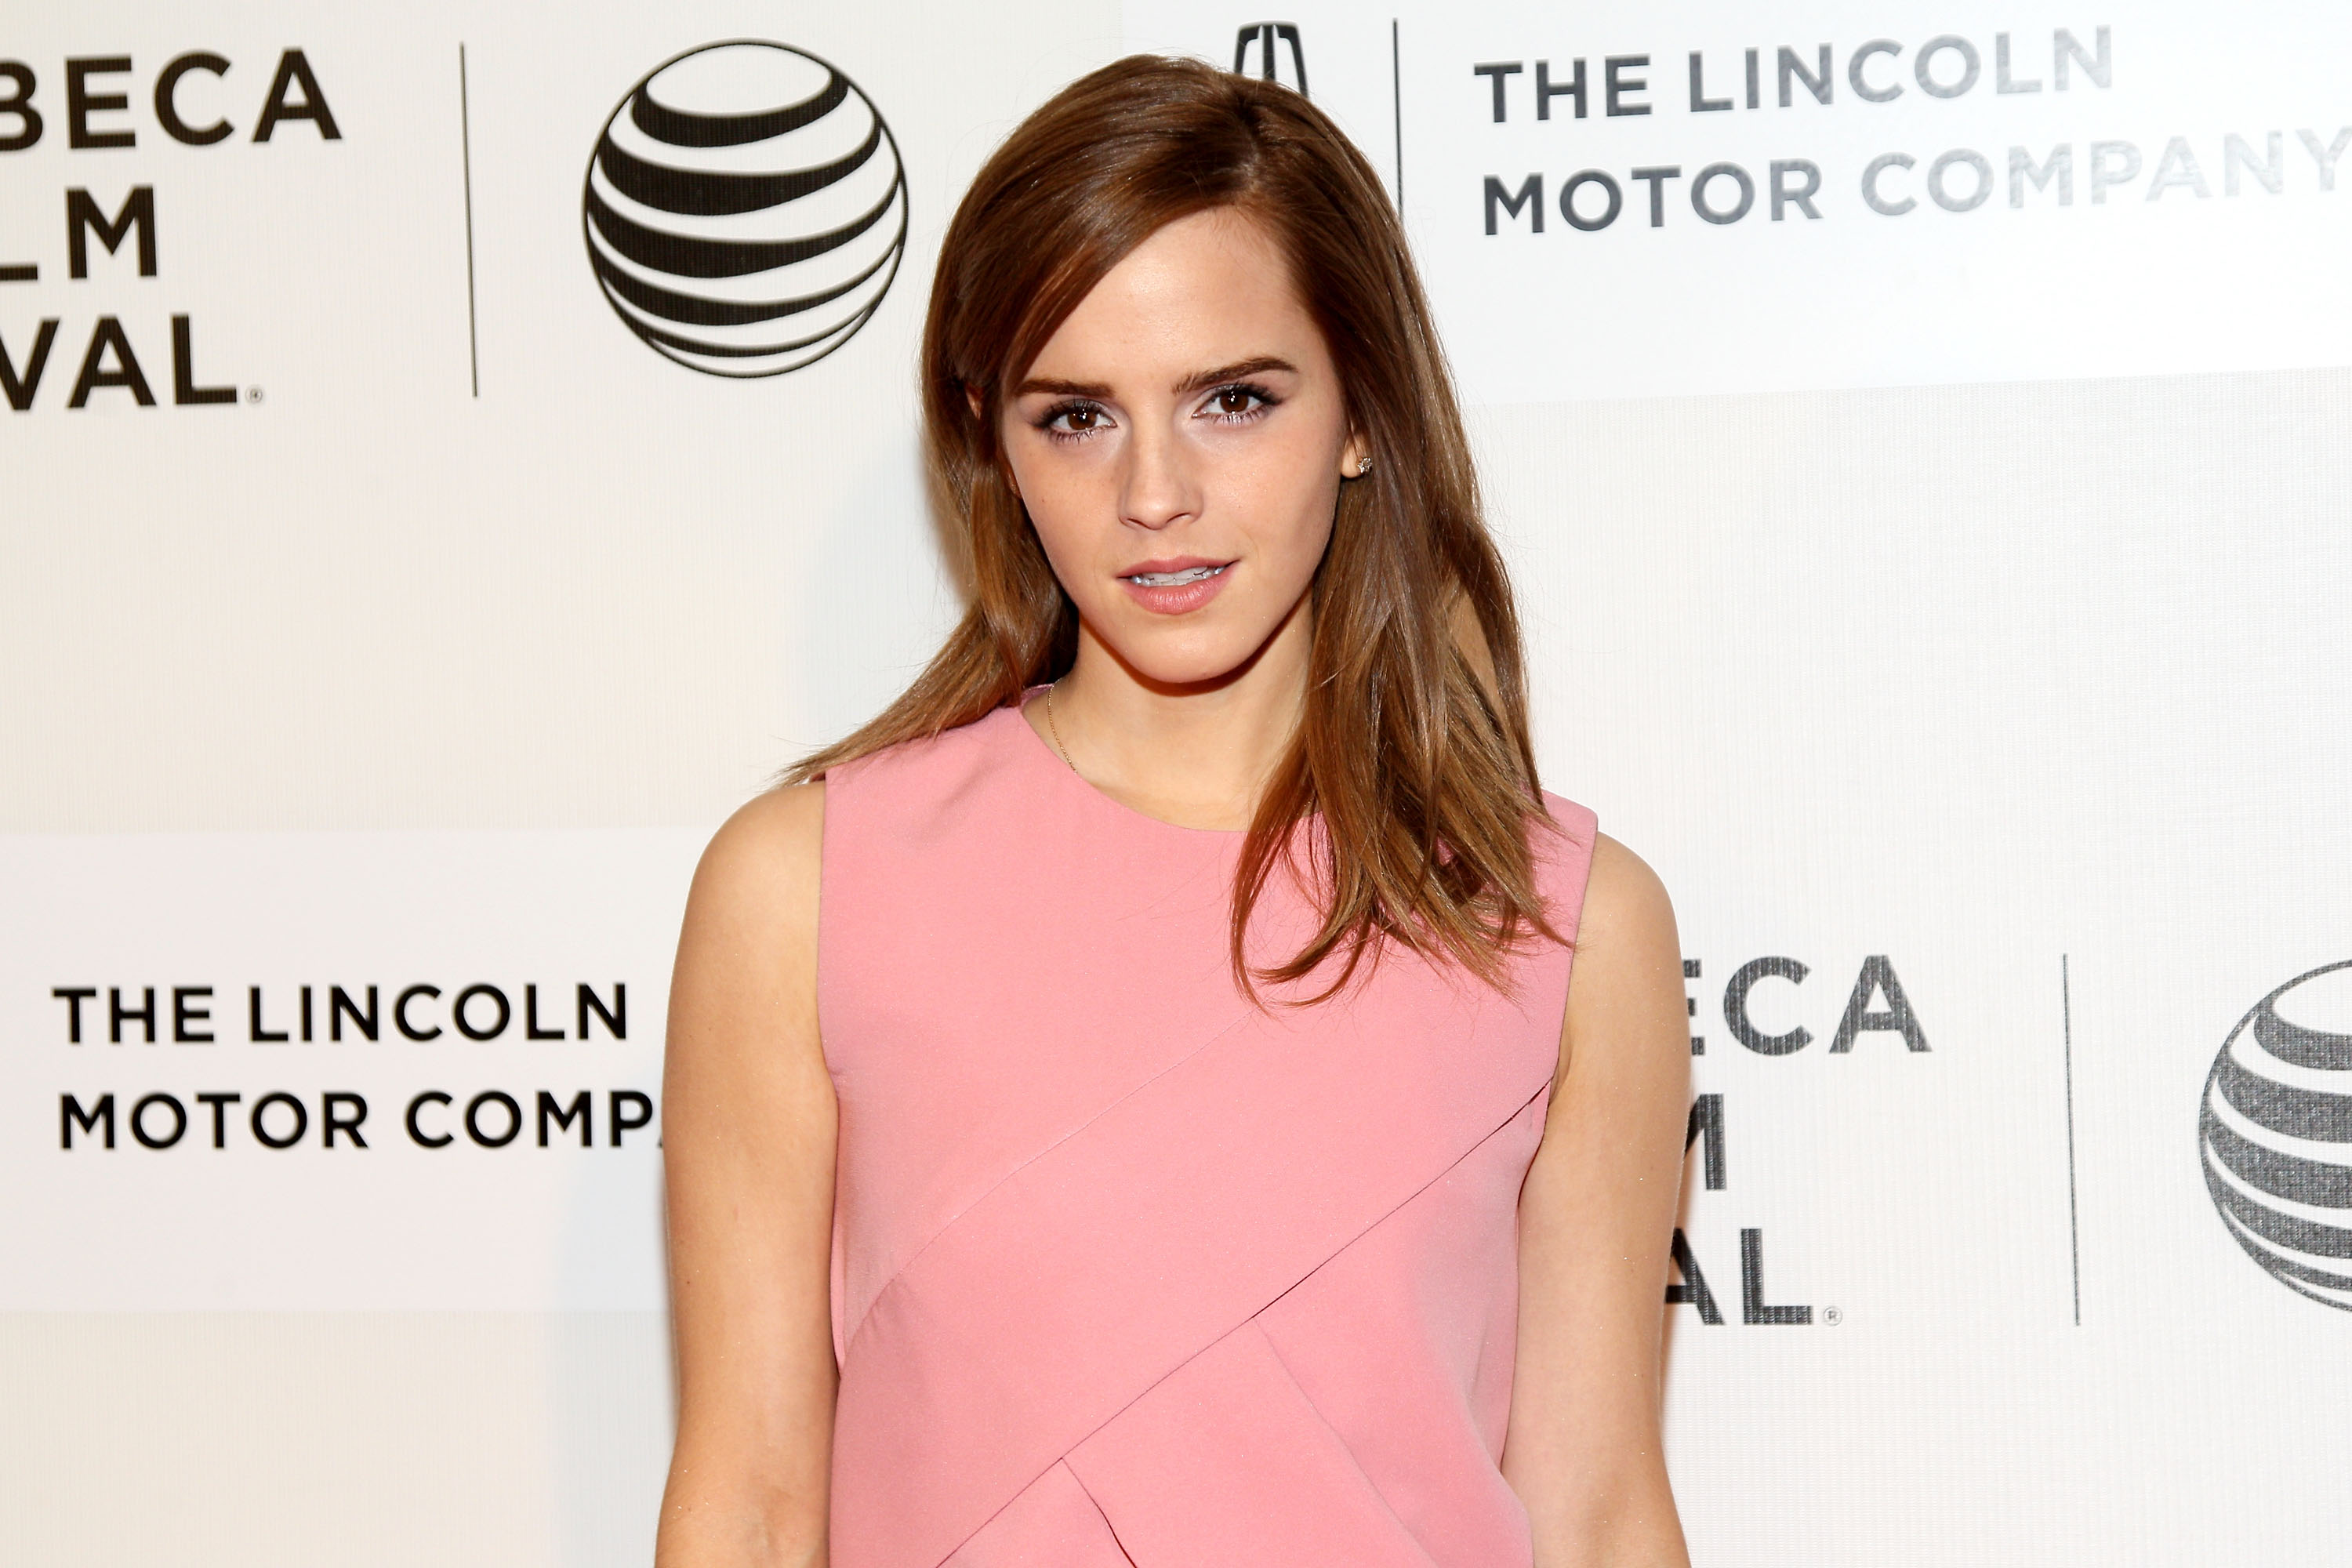 Actress Emma Watson attends the premiere of  Boulevard  during the 2014 Tribeca Film Festival at BMCC Tribeca PAC on April 20, 2014 in New York City.